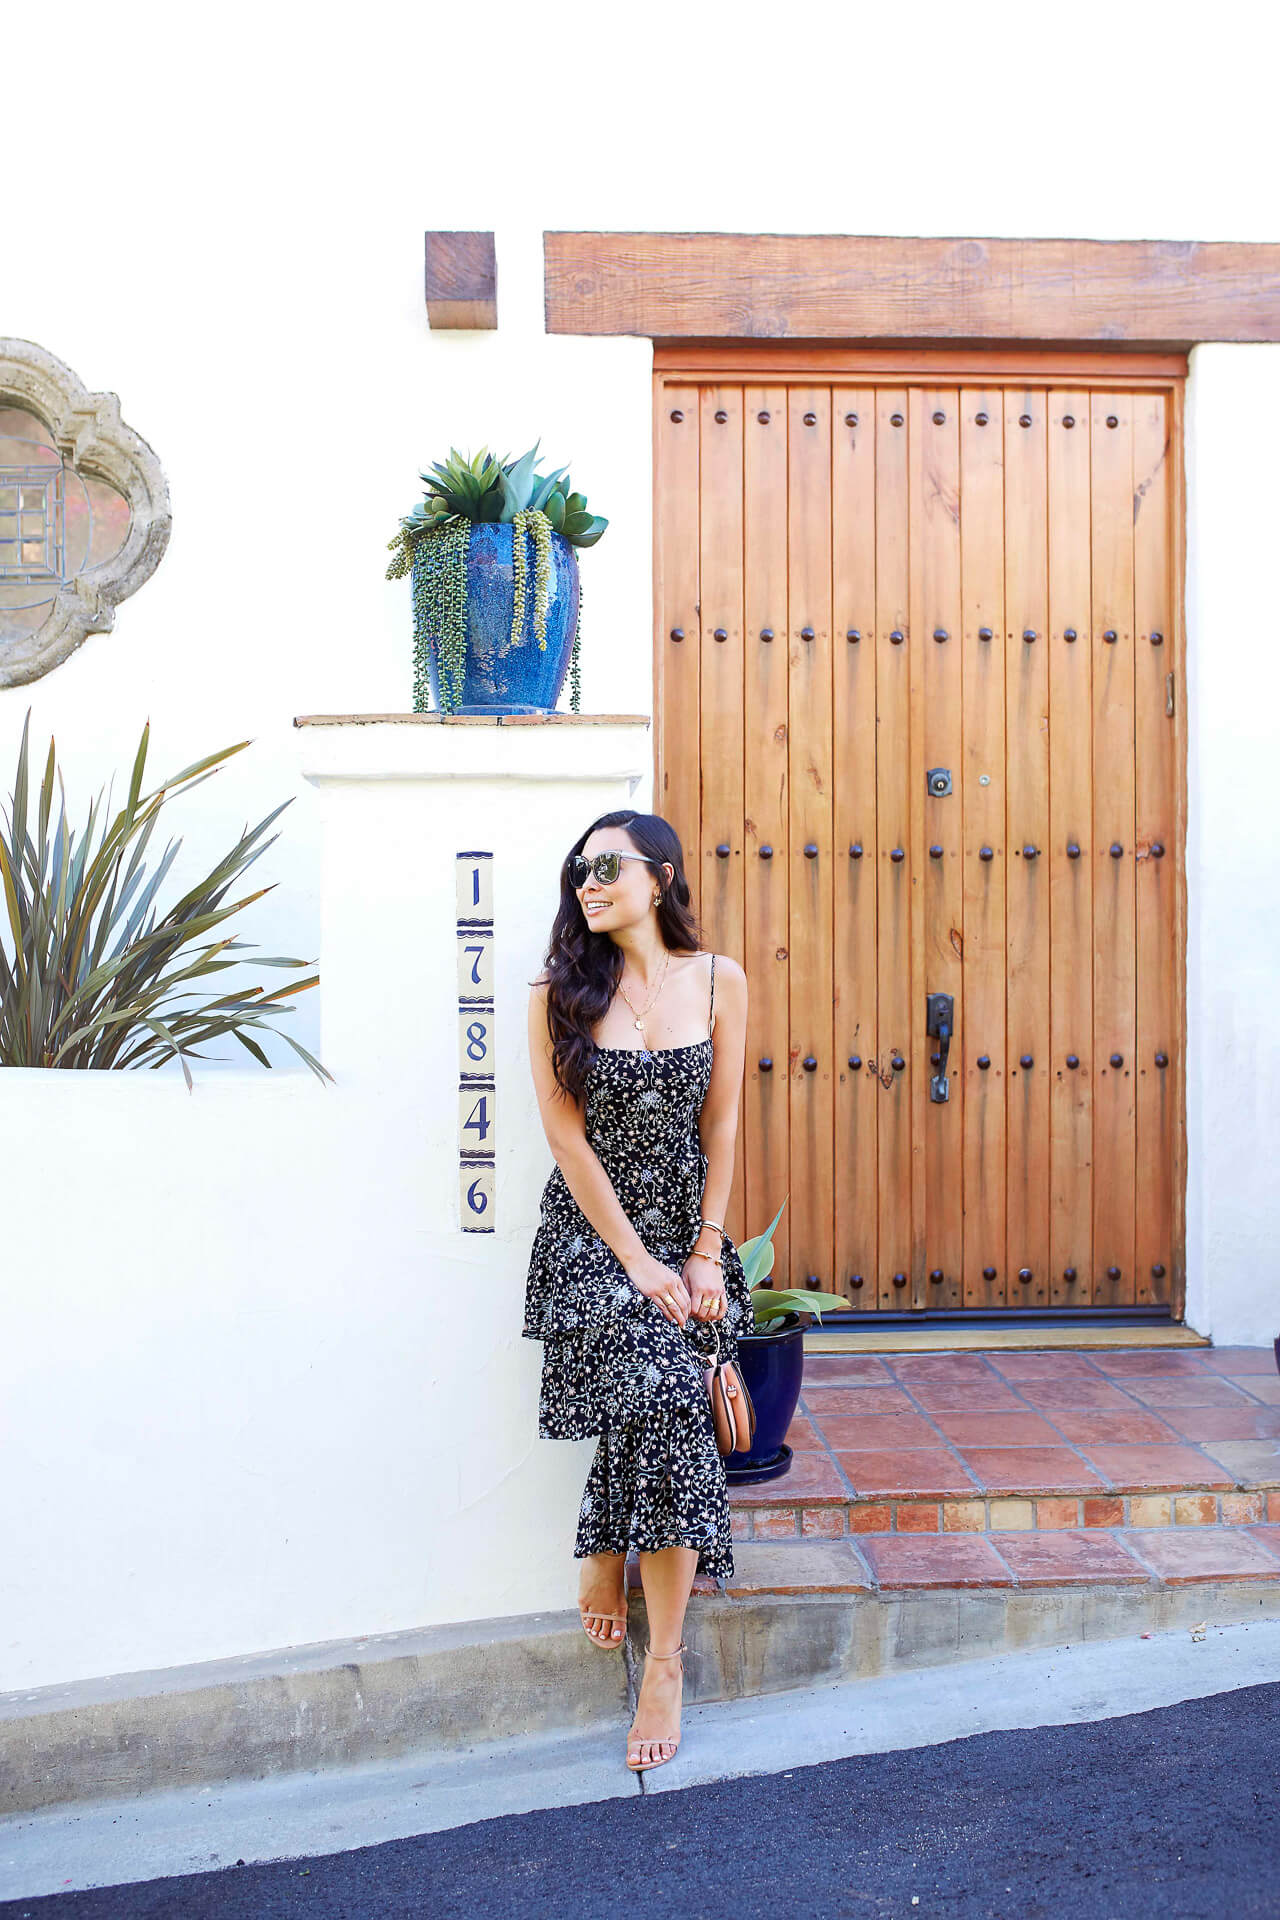 What to do in Venice according to With Love From Kat. - M Loves M @marmar